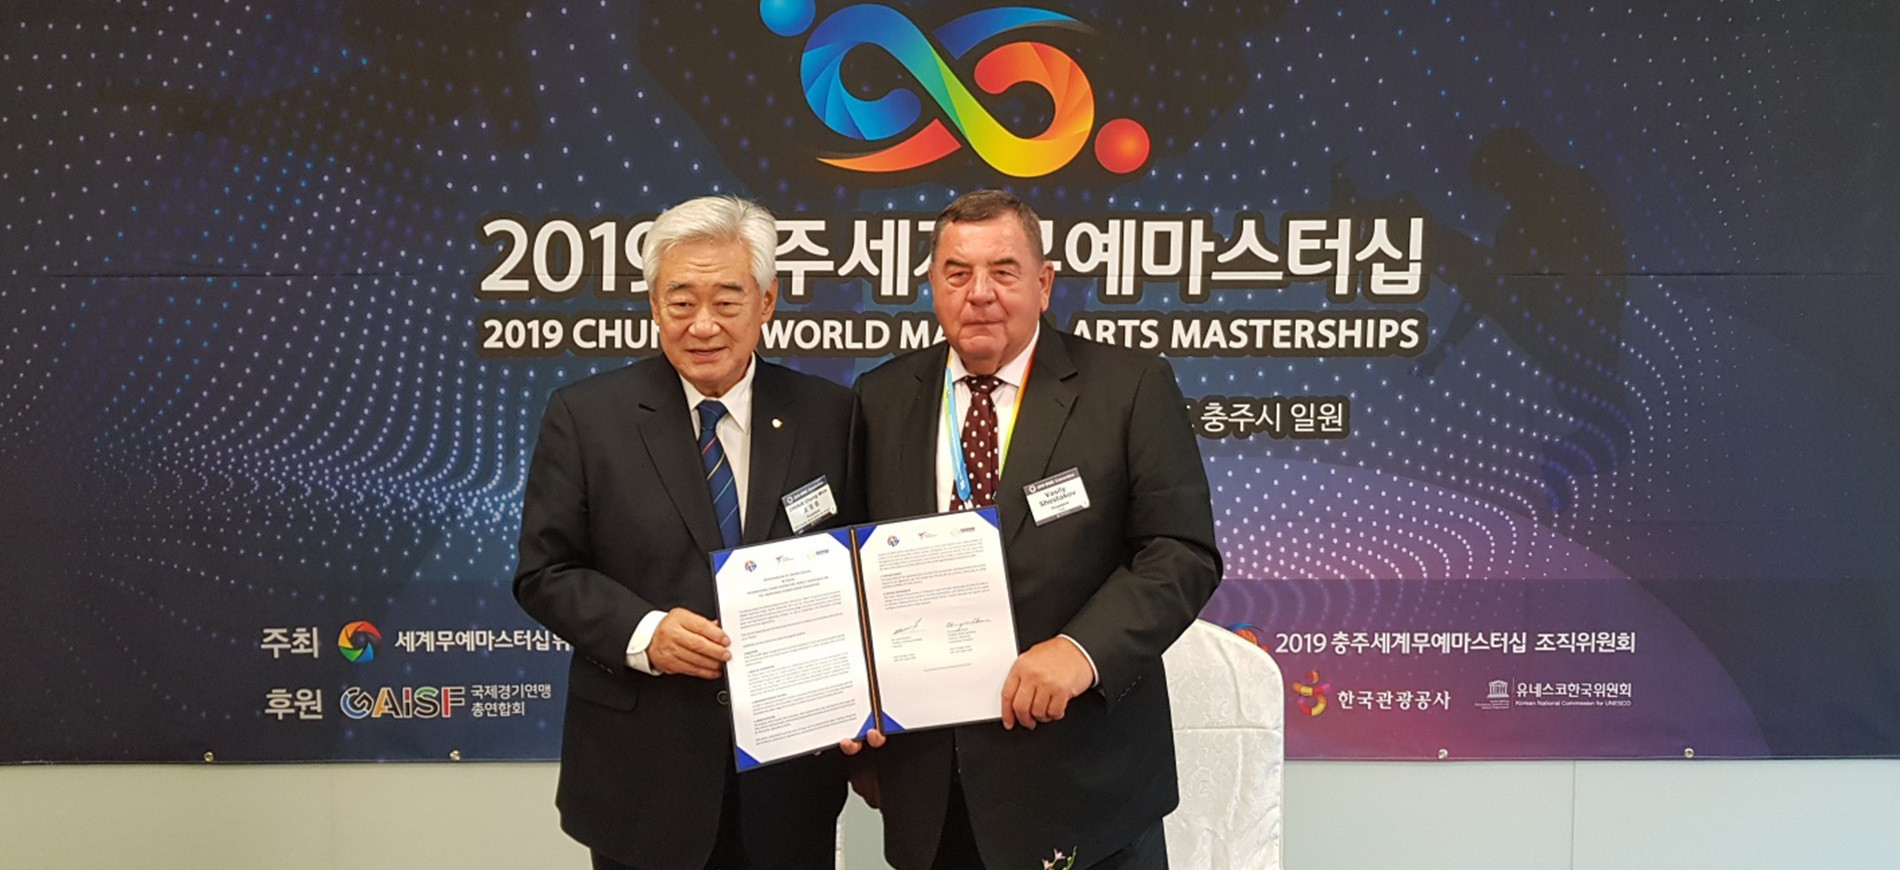 World Taekwondo President Chungwon Choue and FIAS counterpart Vasily Shestakov signed the Memorandum of Understanding ©World Taekwondo